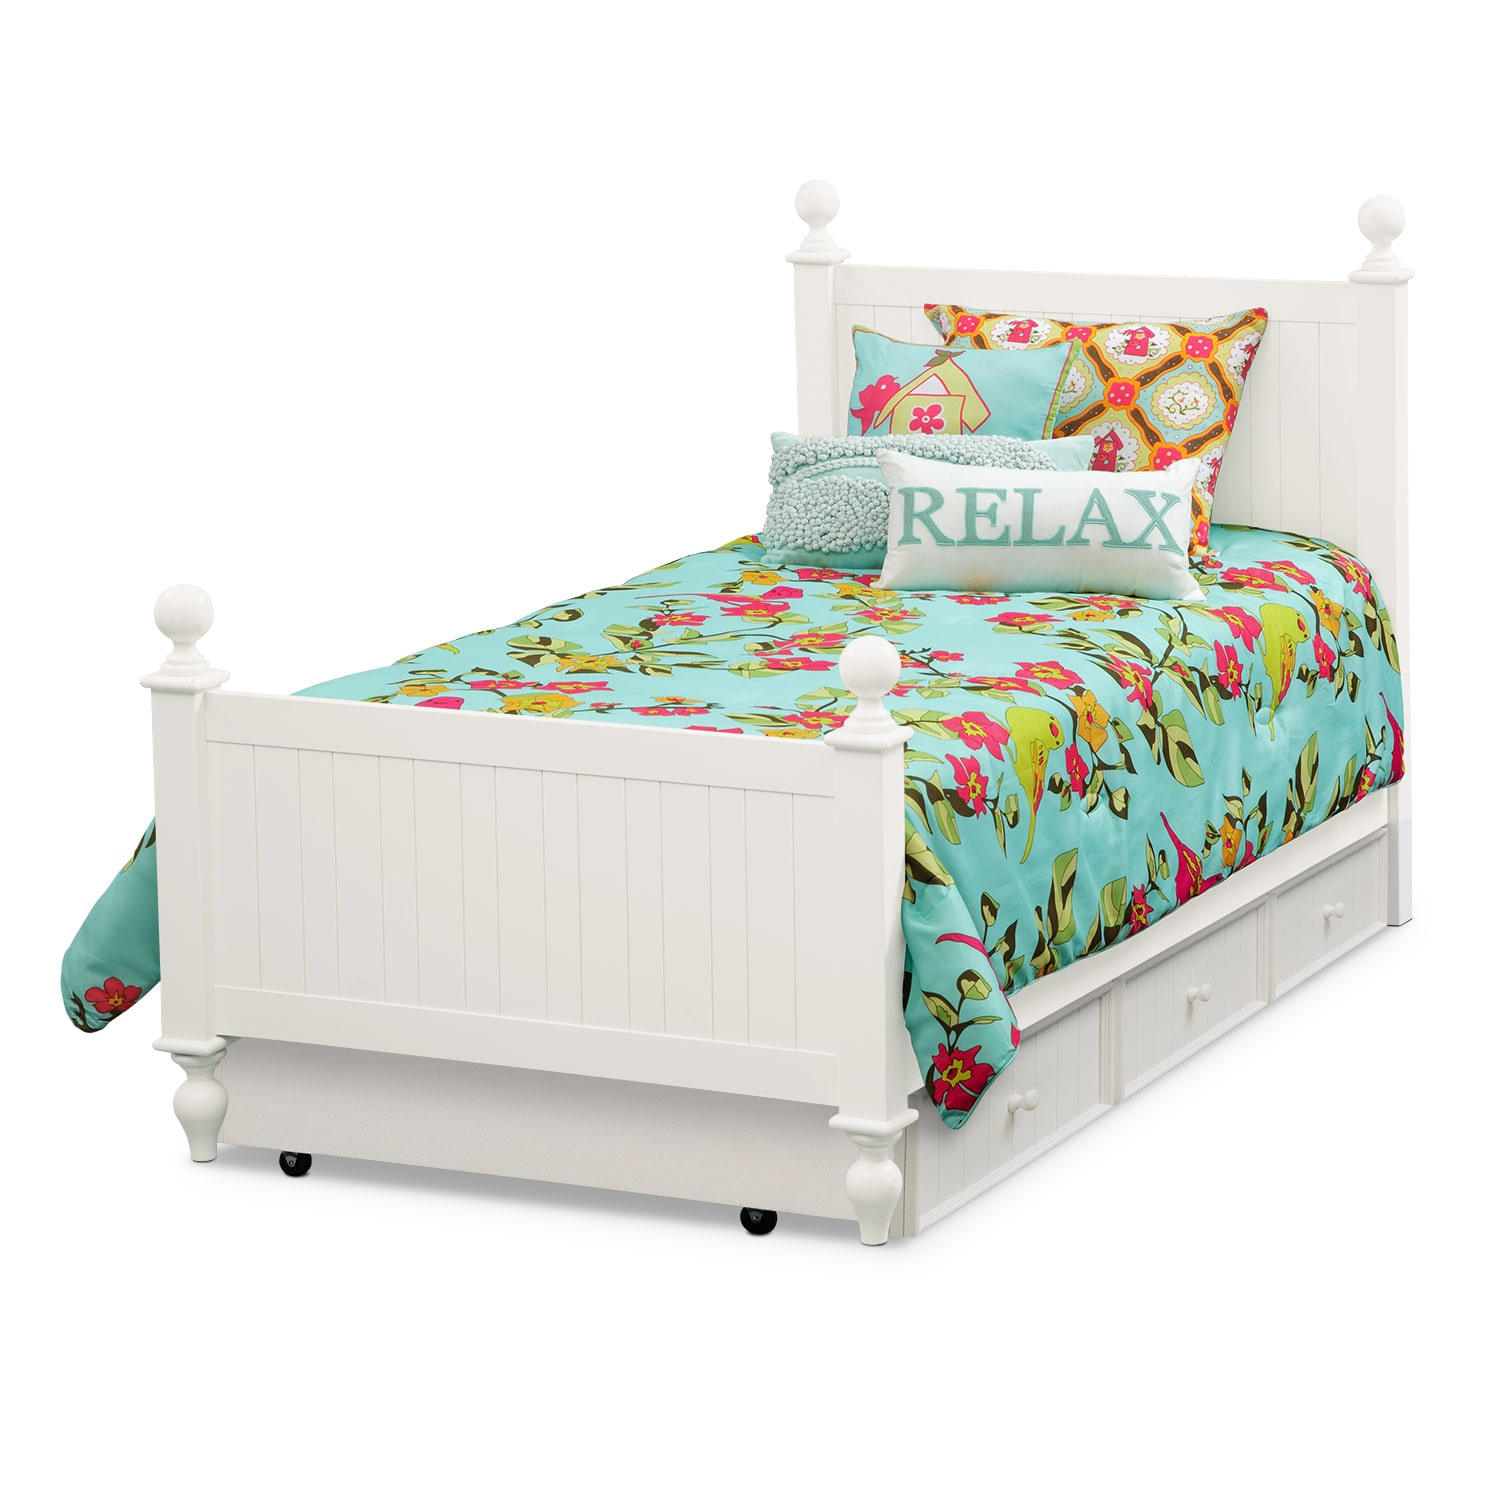 Kids Furniture - Colorworks Twin Bed w/ Trundle - White